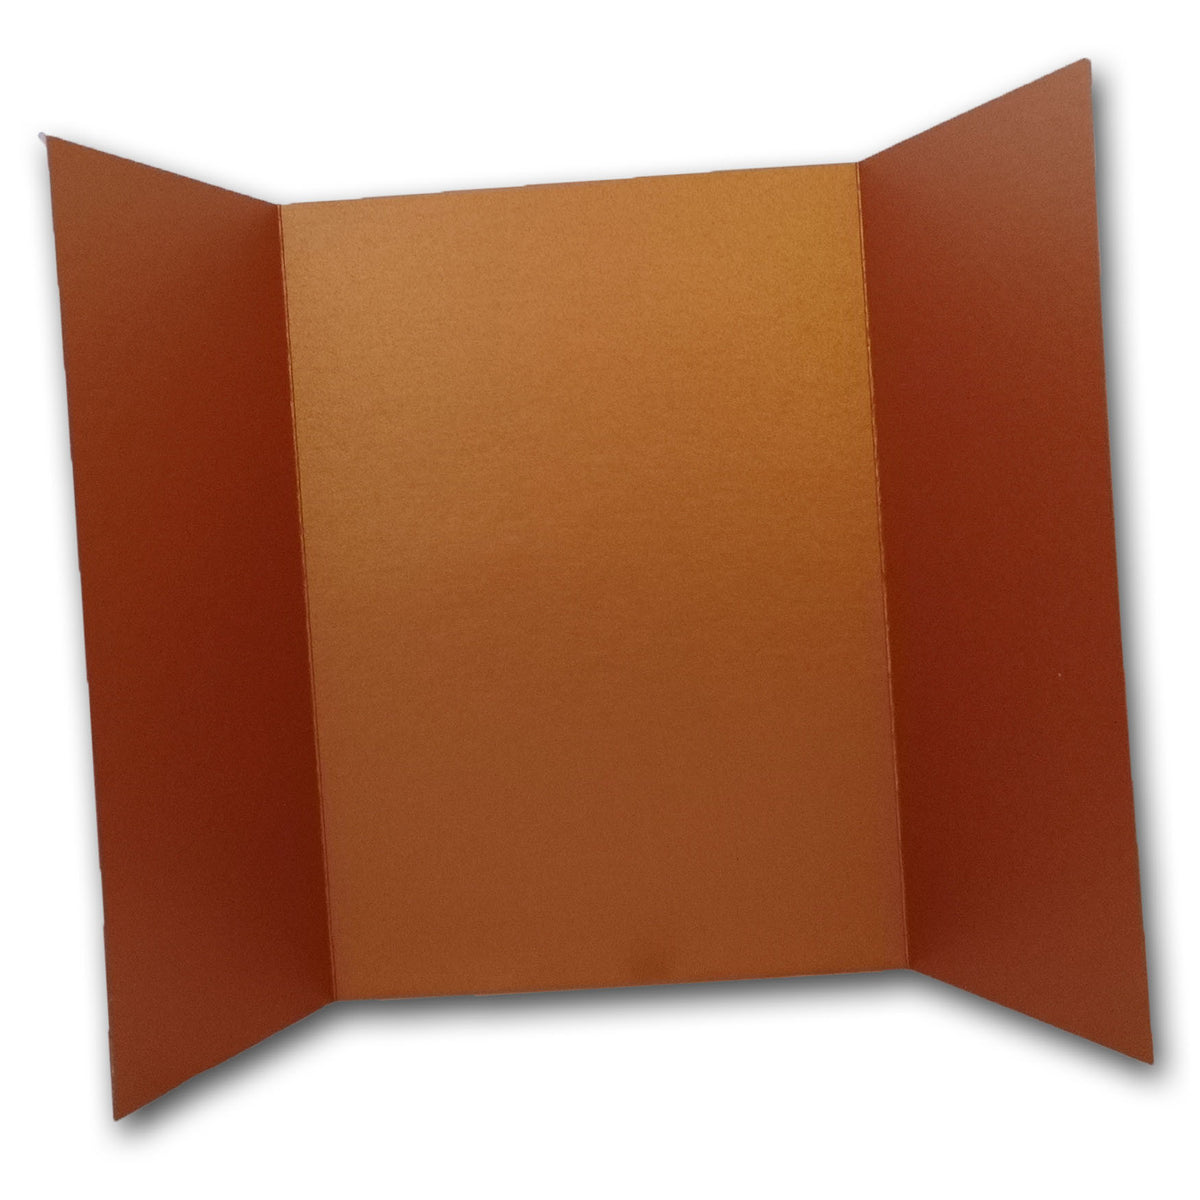 Shimmery Copper 5x7 Gatefold Discount Card Stock DIY Invitations